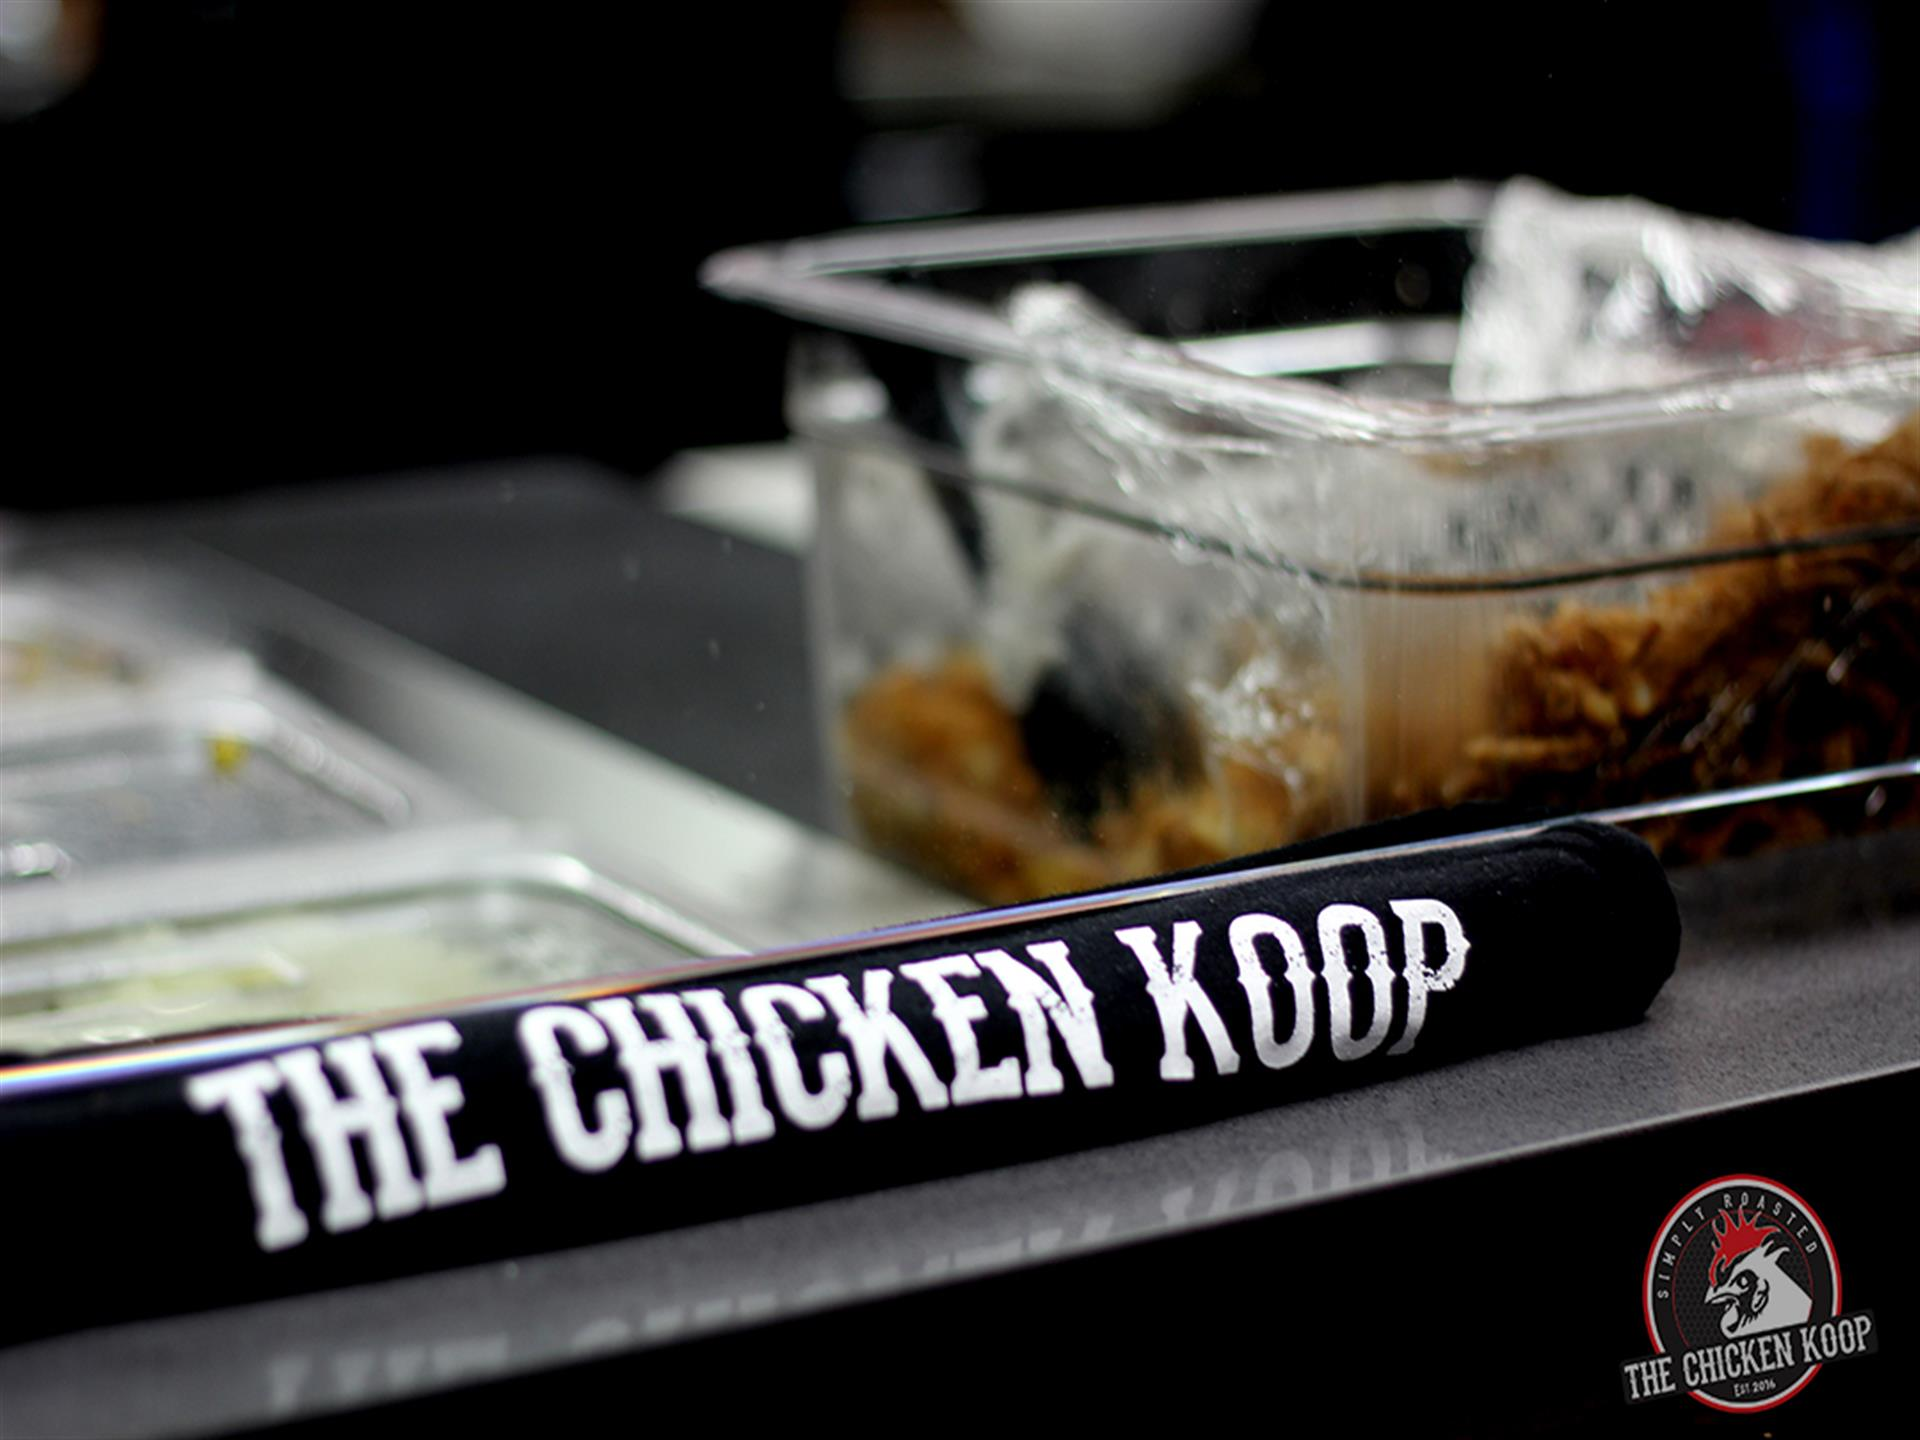 The Chicken Koop food preparation station